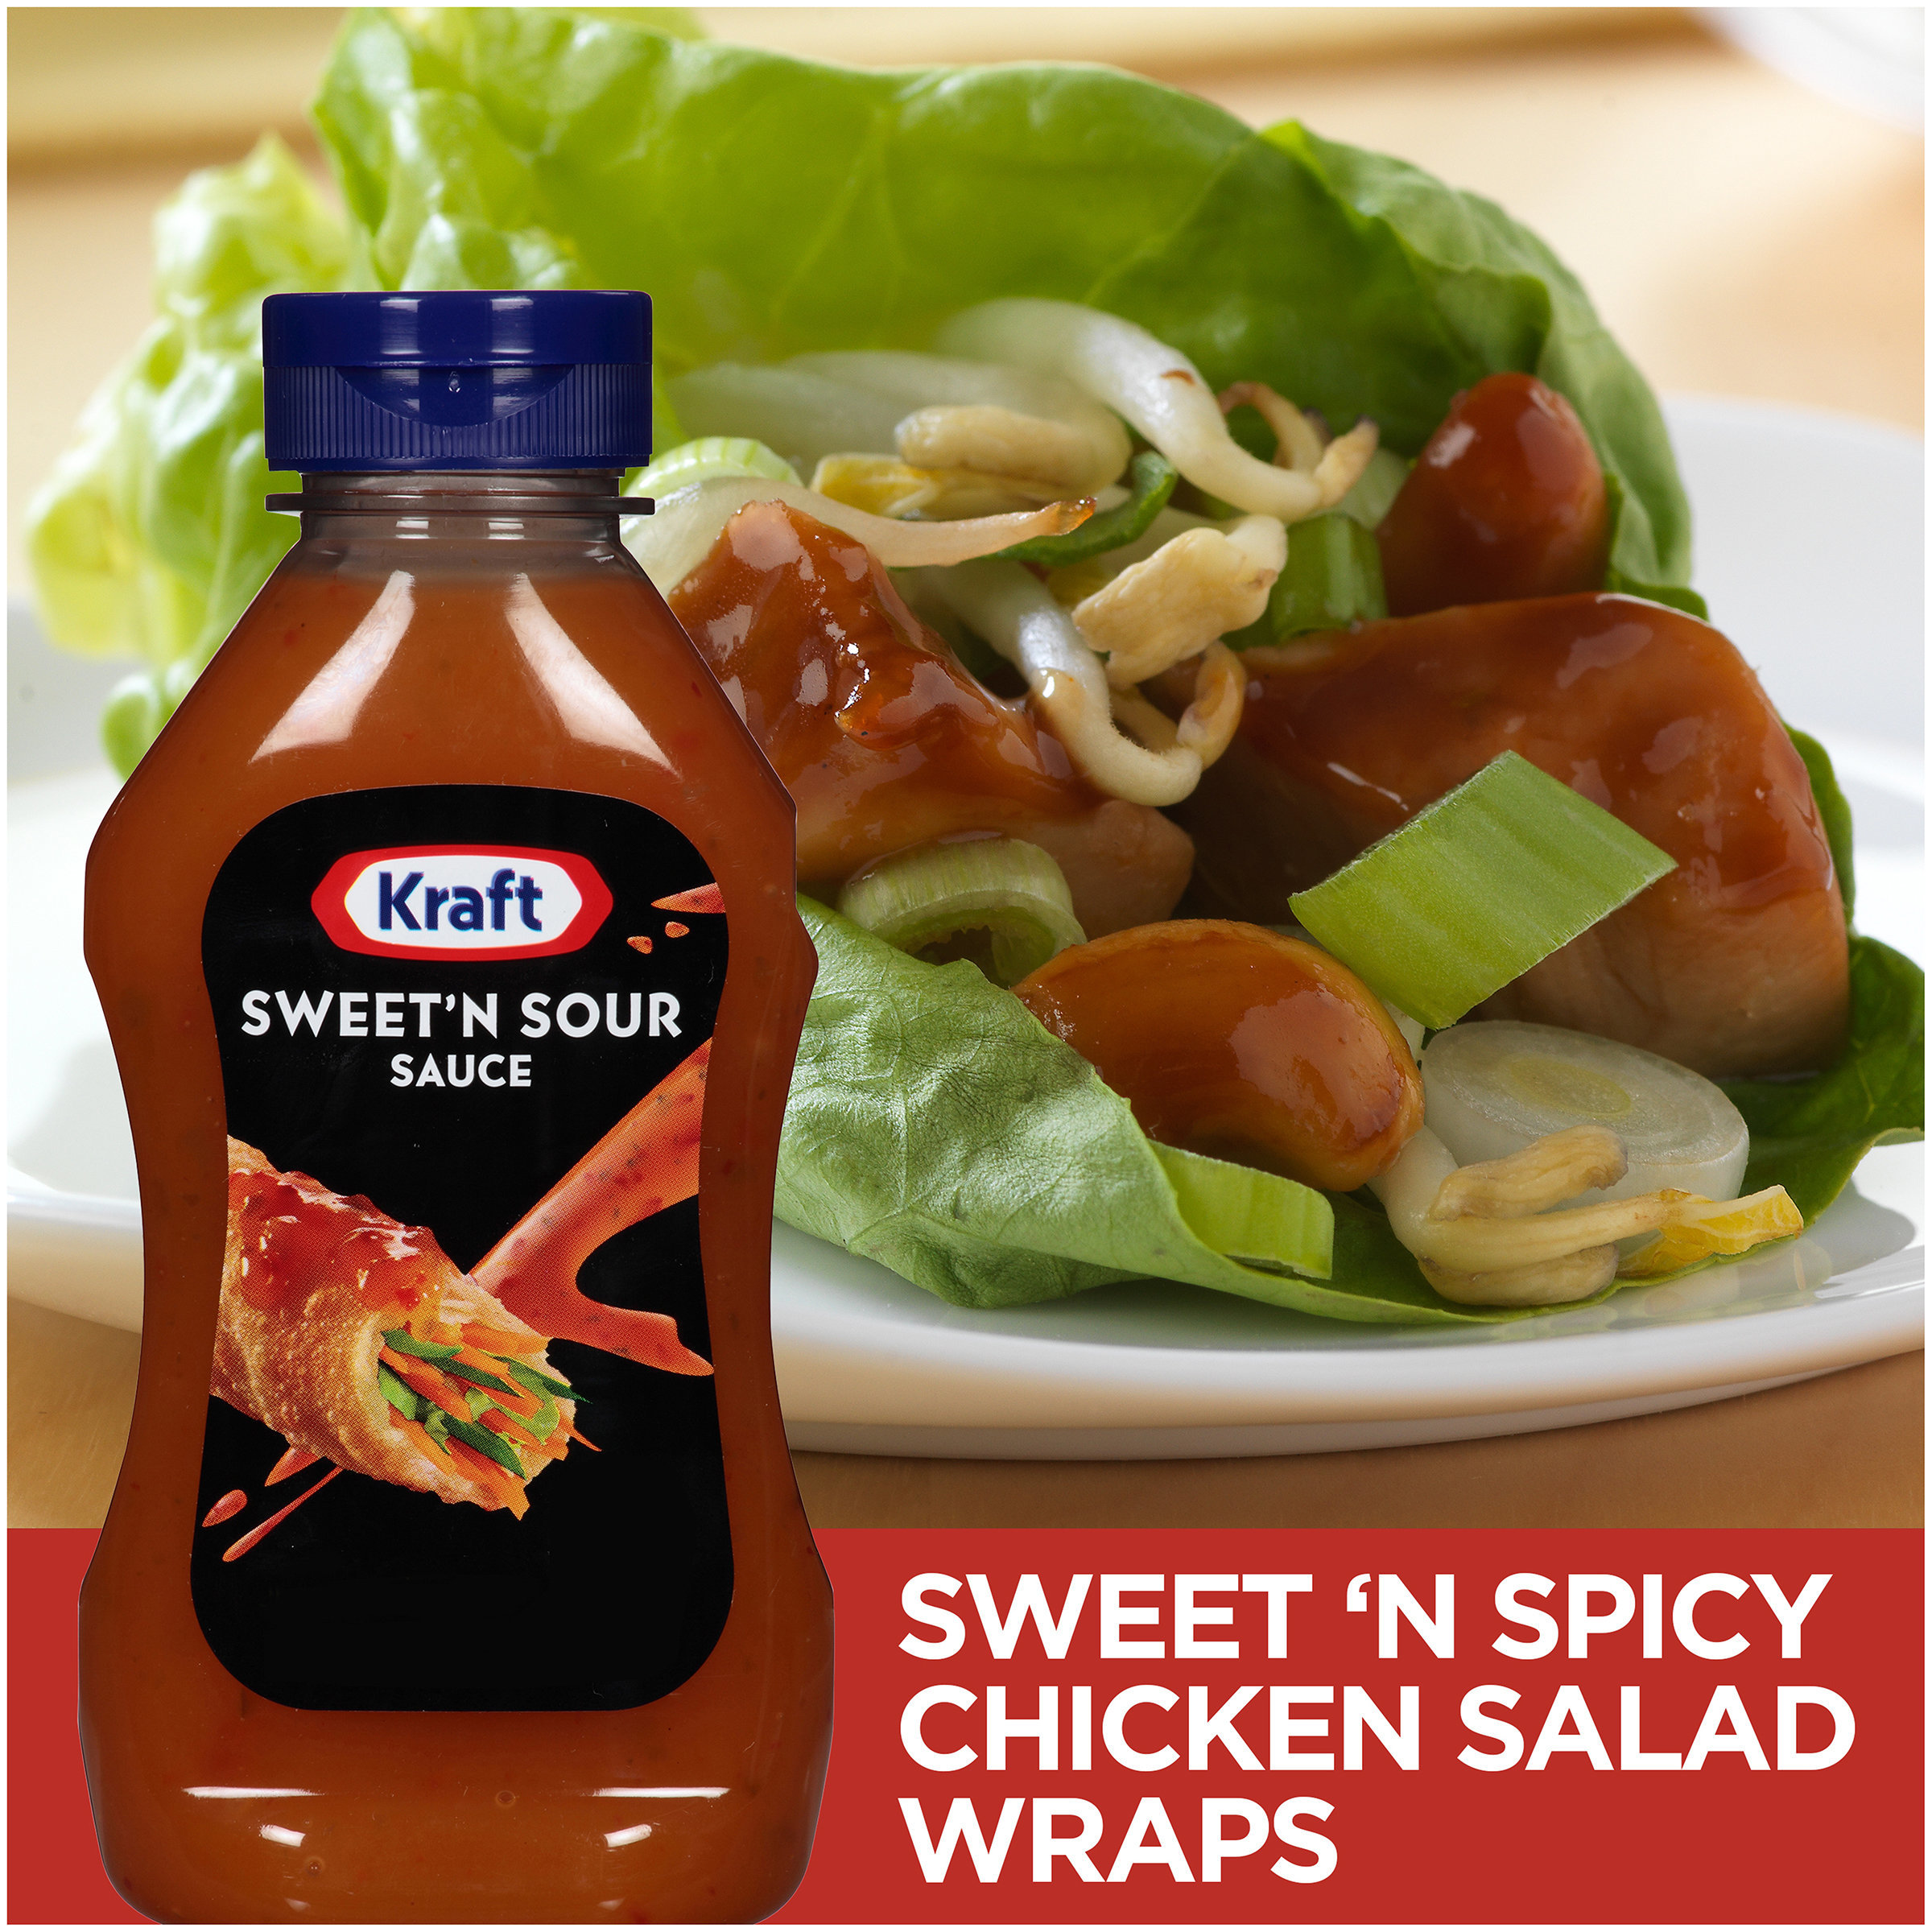 Kraft Sweet N Sour Sauce 12 Fl Oz Bottle Walmart Com Walmart Com